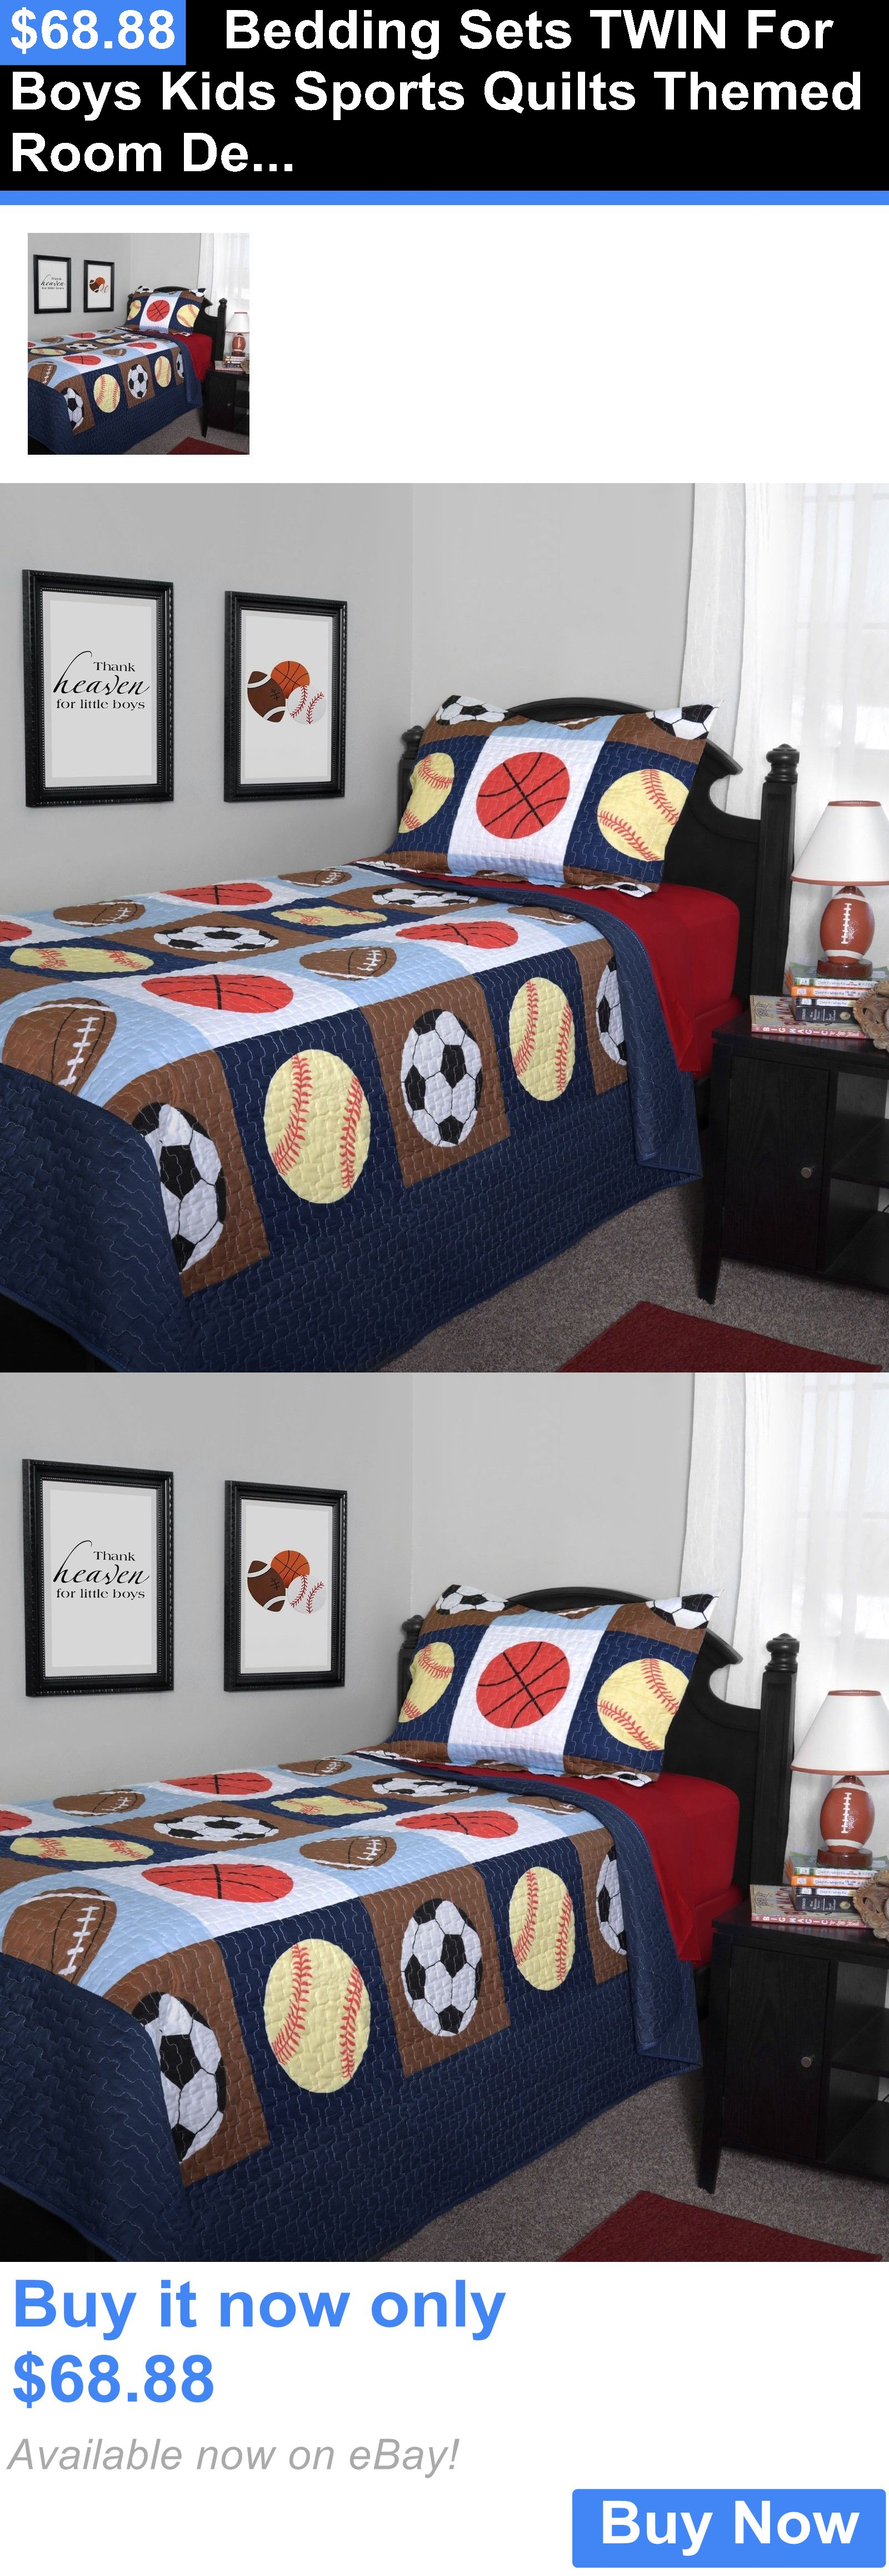 Kids At Home Bedding Sets Twin For Boys Kids Sports Quilts Themed - Boys sports bedding sets twin